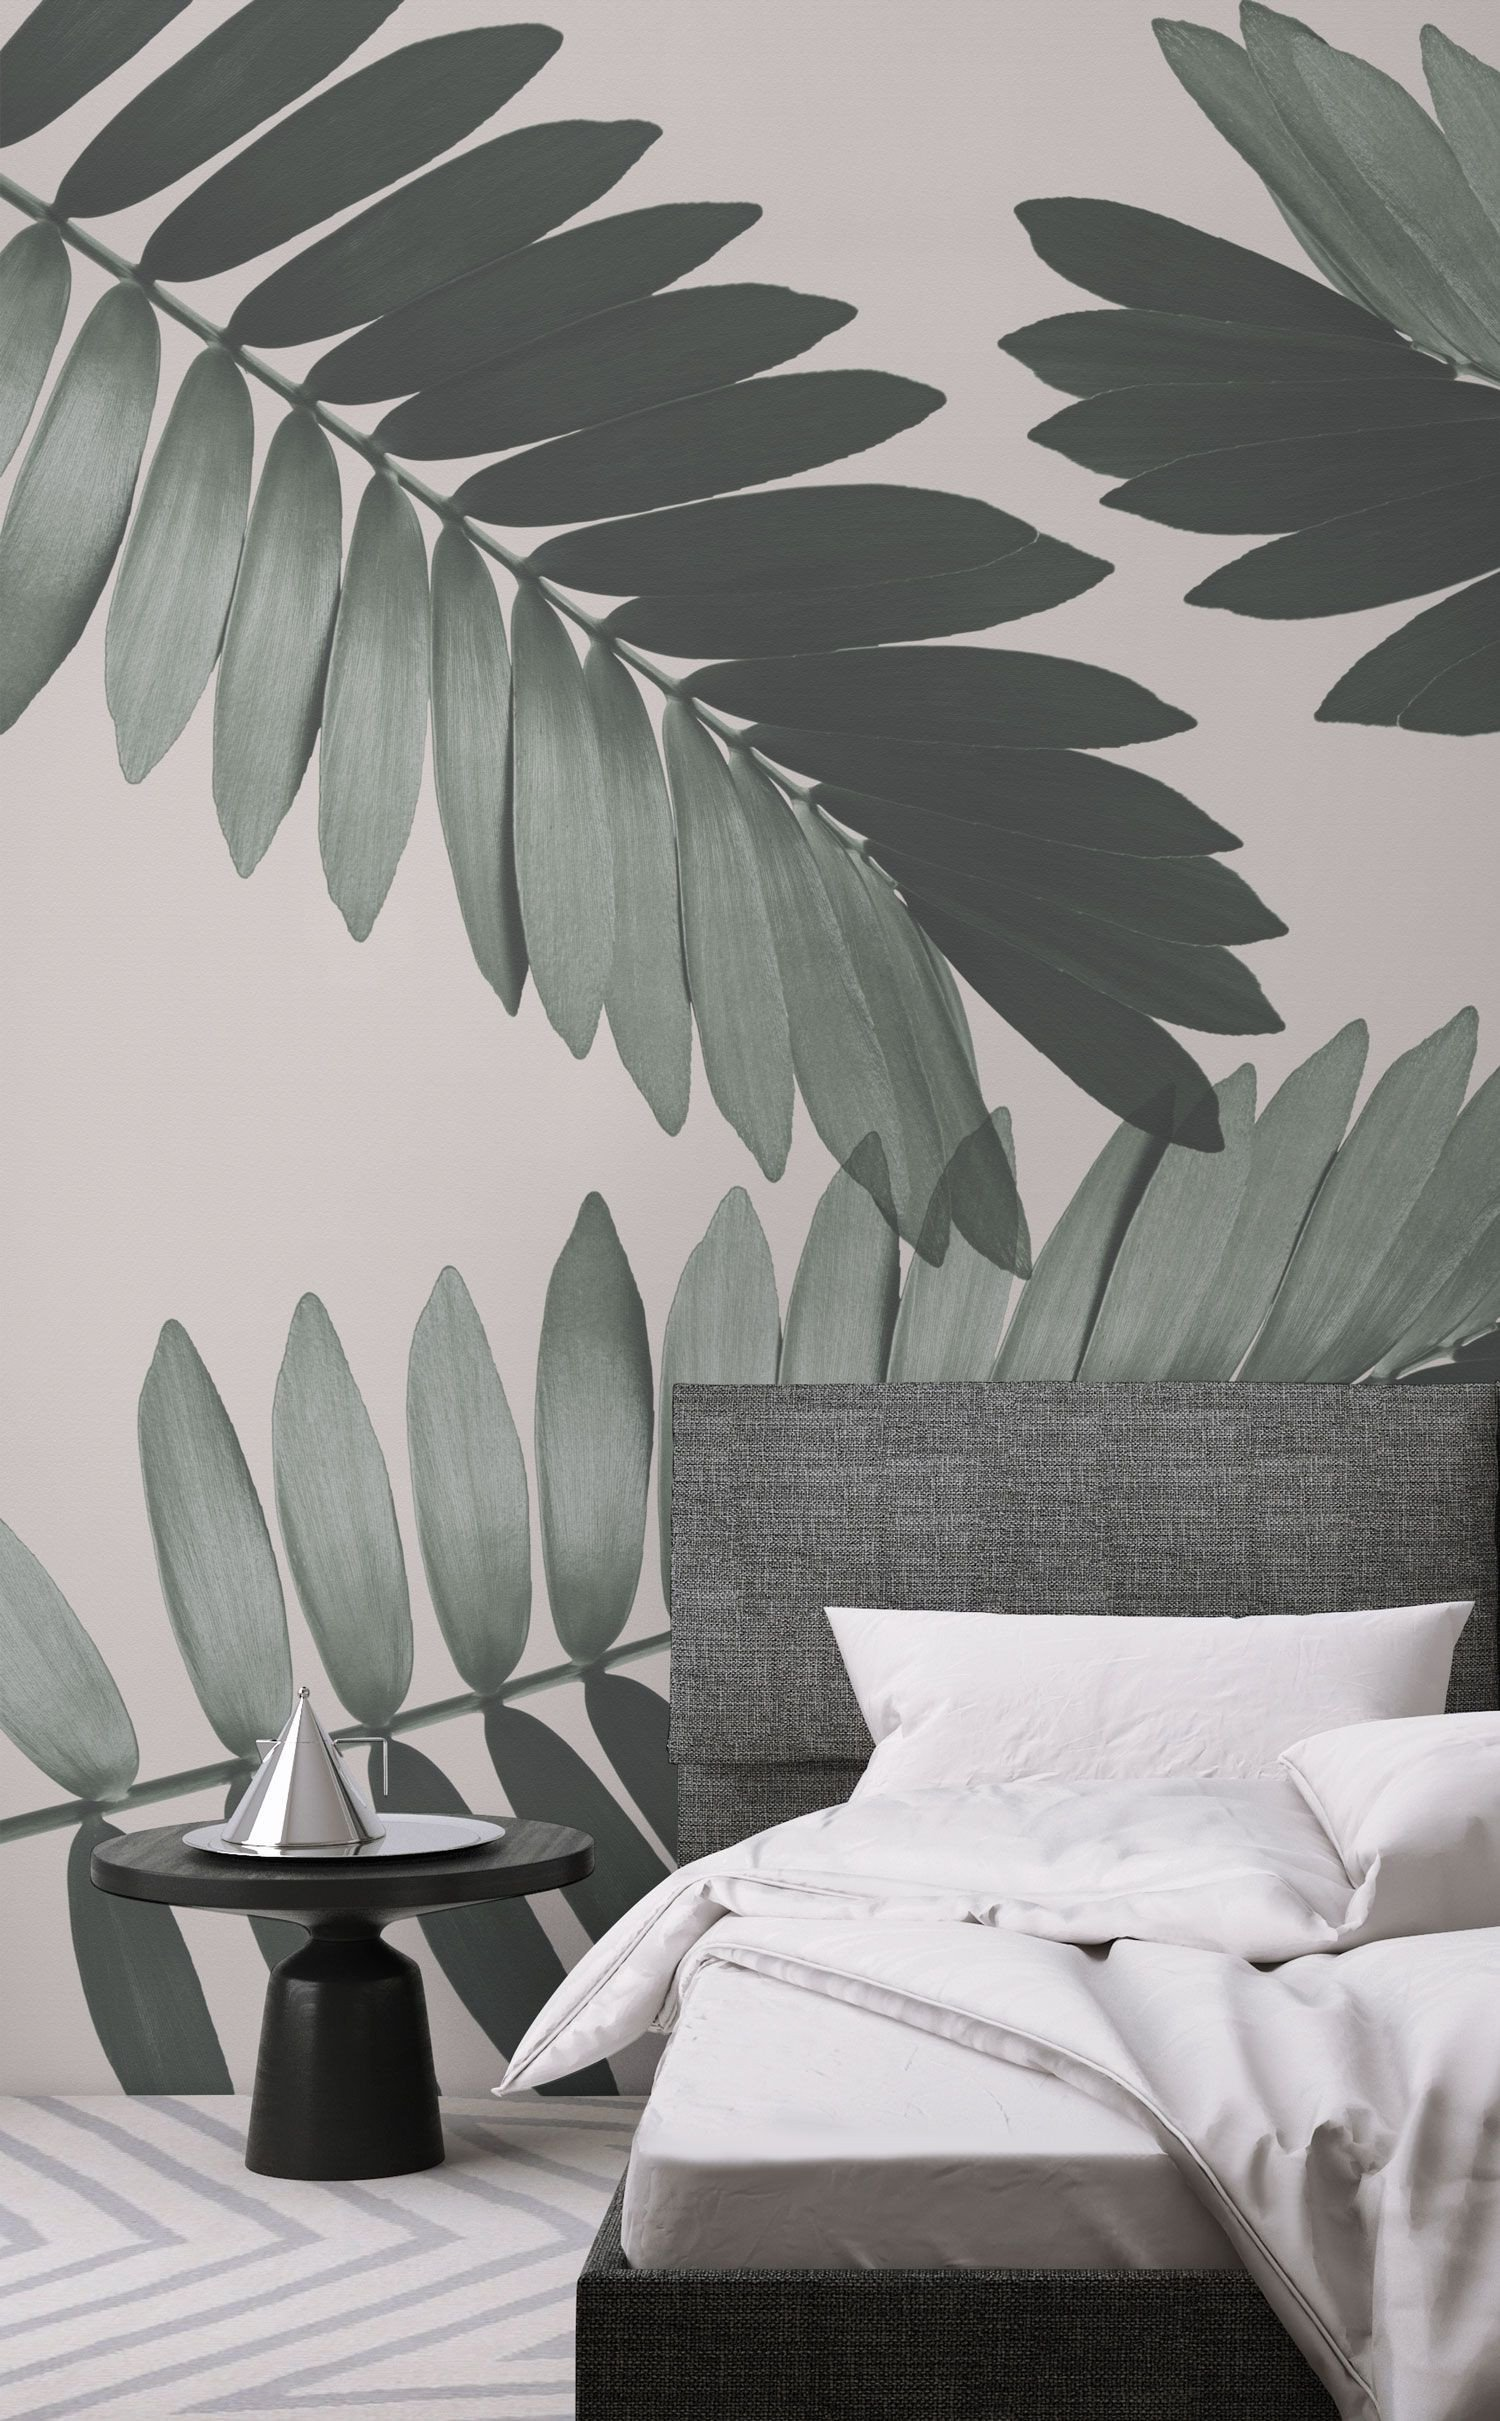 Wallpapers for Bedroom Wall Luxury Cardboard Palm Wall Mural In 2020